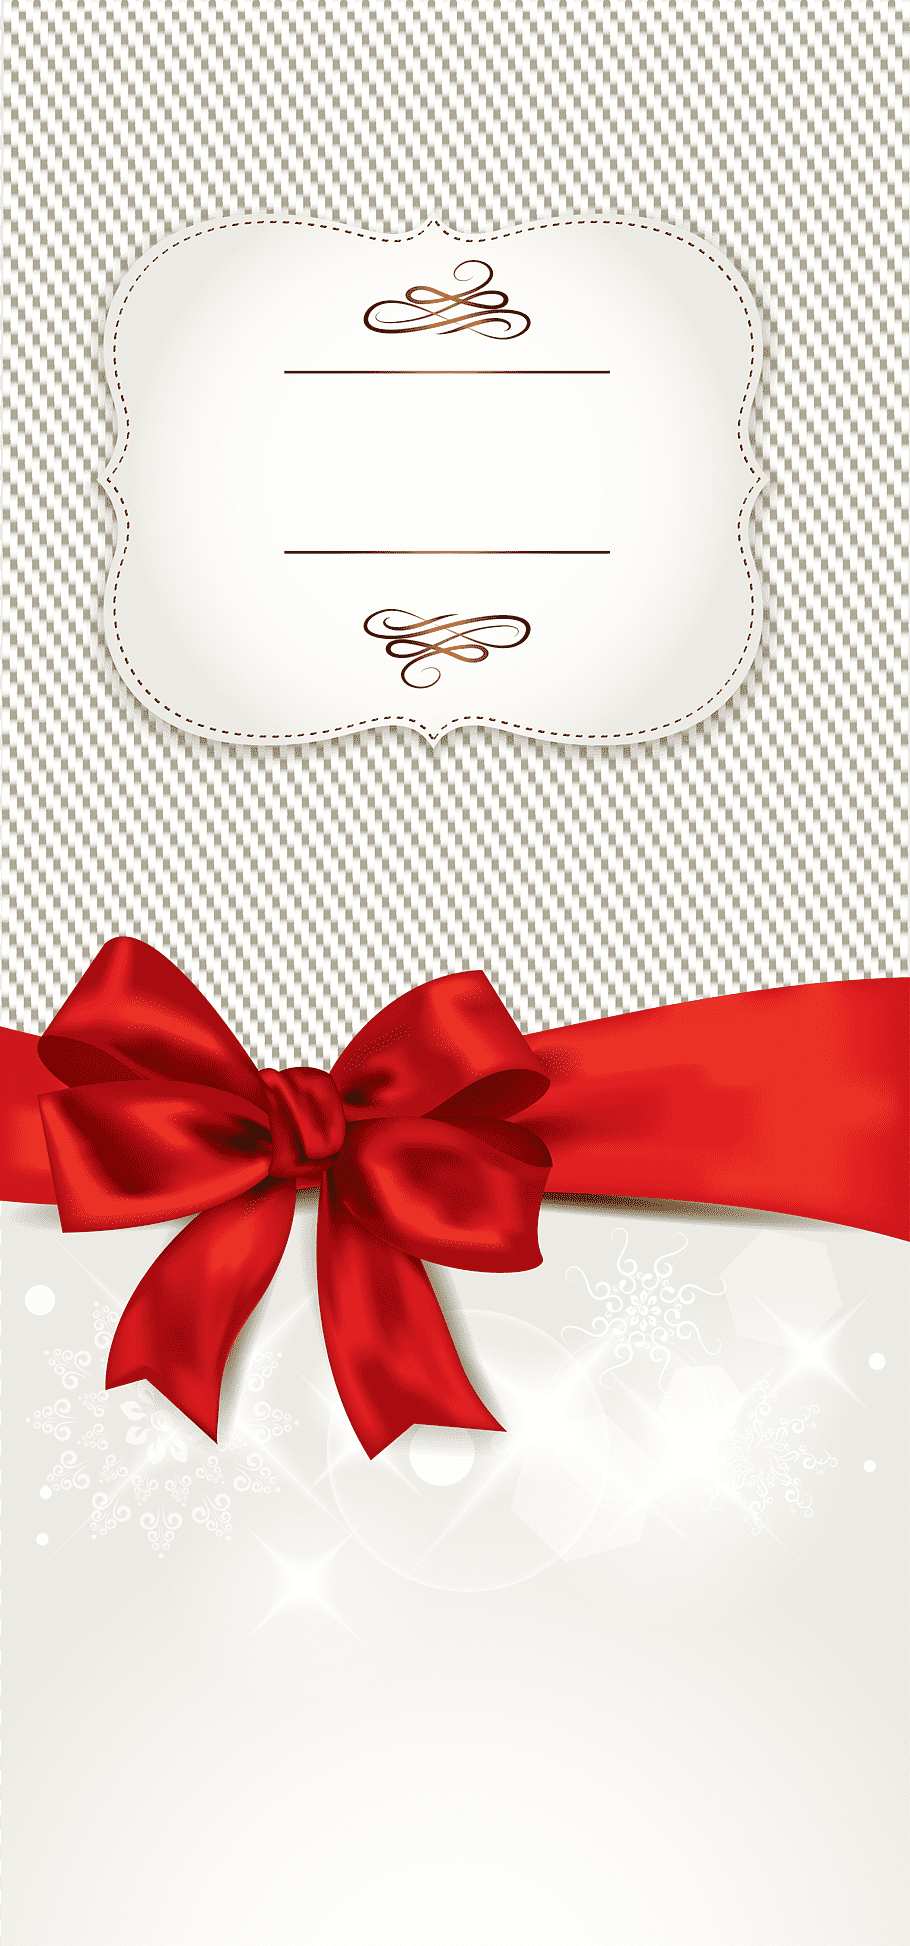 Icon, Label Gift Card Template, red ribbon bow tie free png.